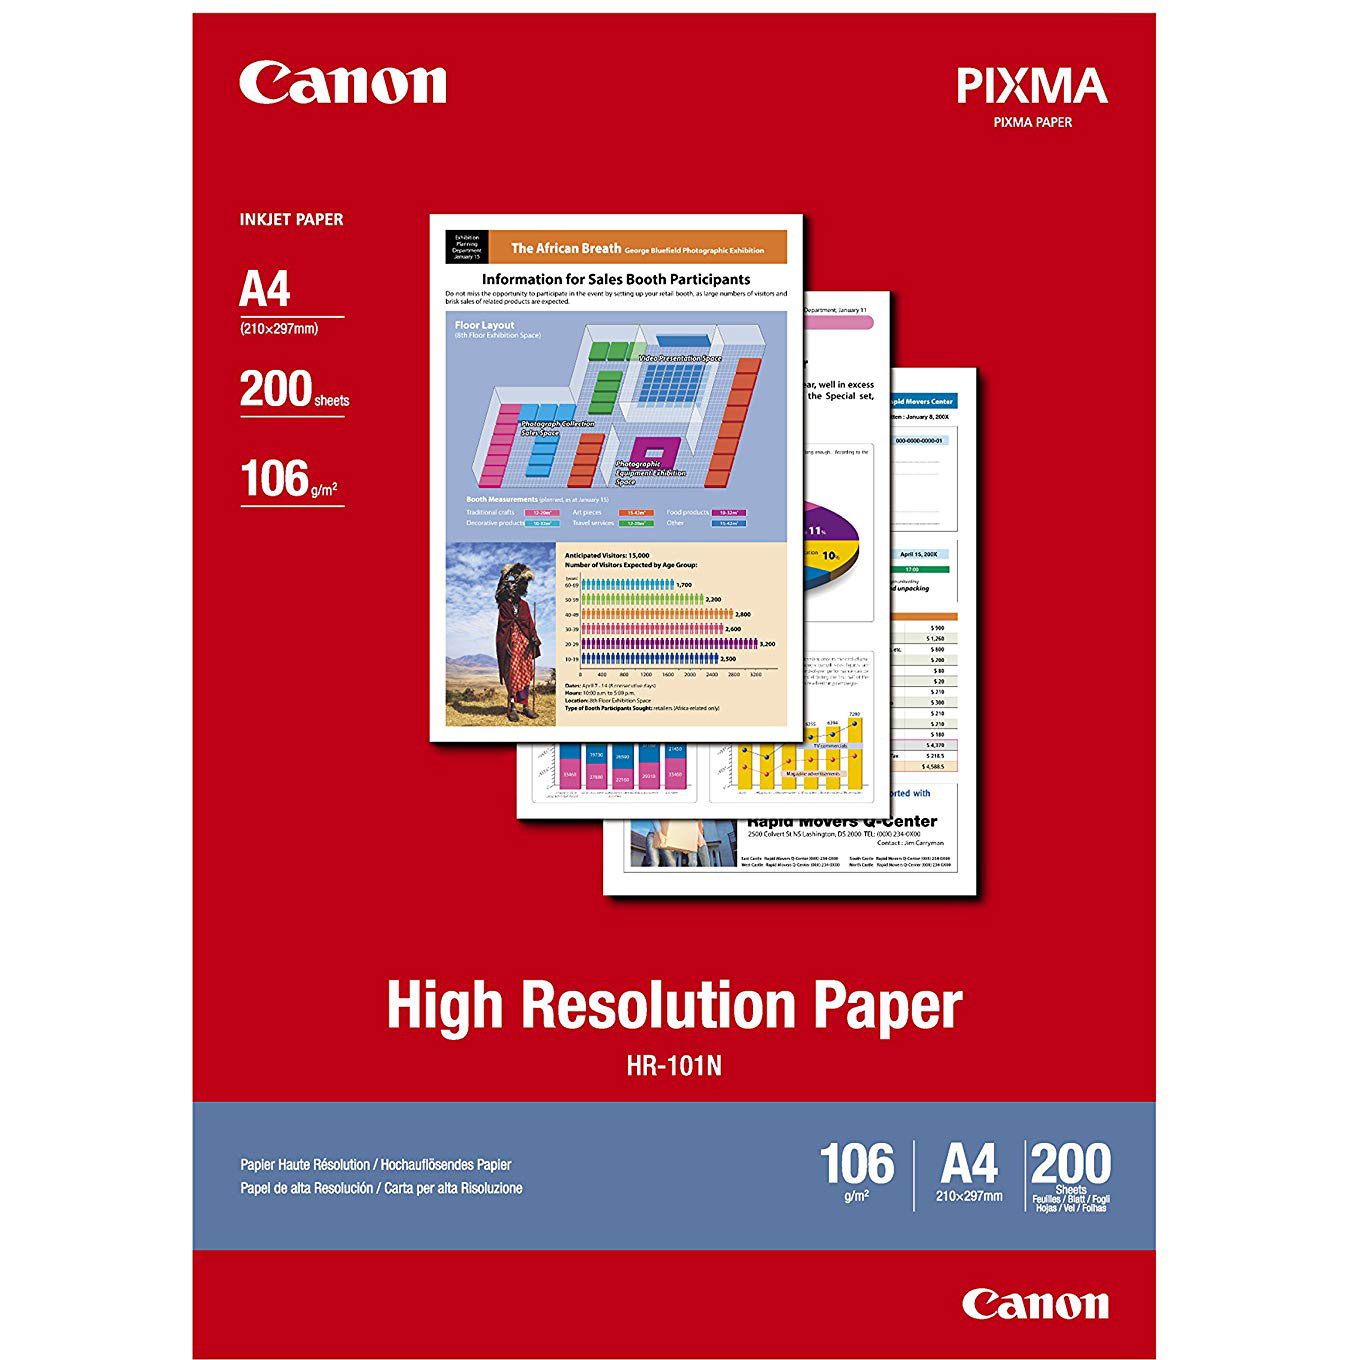 Original Canon 106gsm A4 High Resolution Inkjet Paper - 200 sheets (HR-101A4)